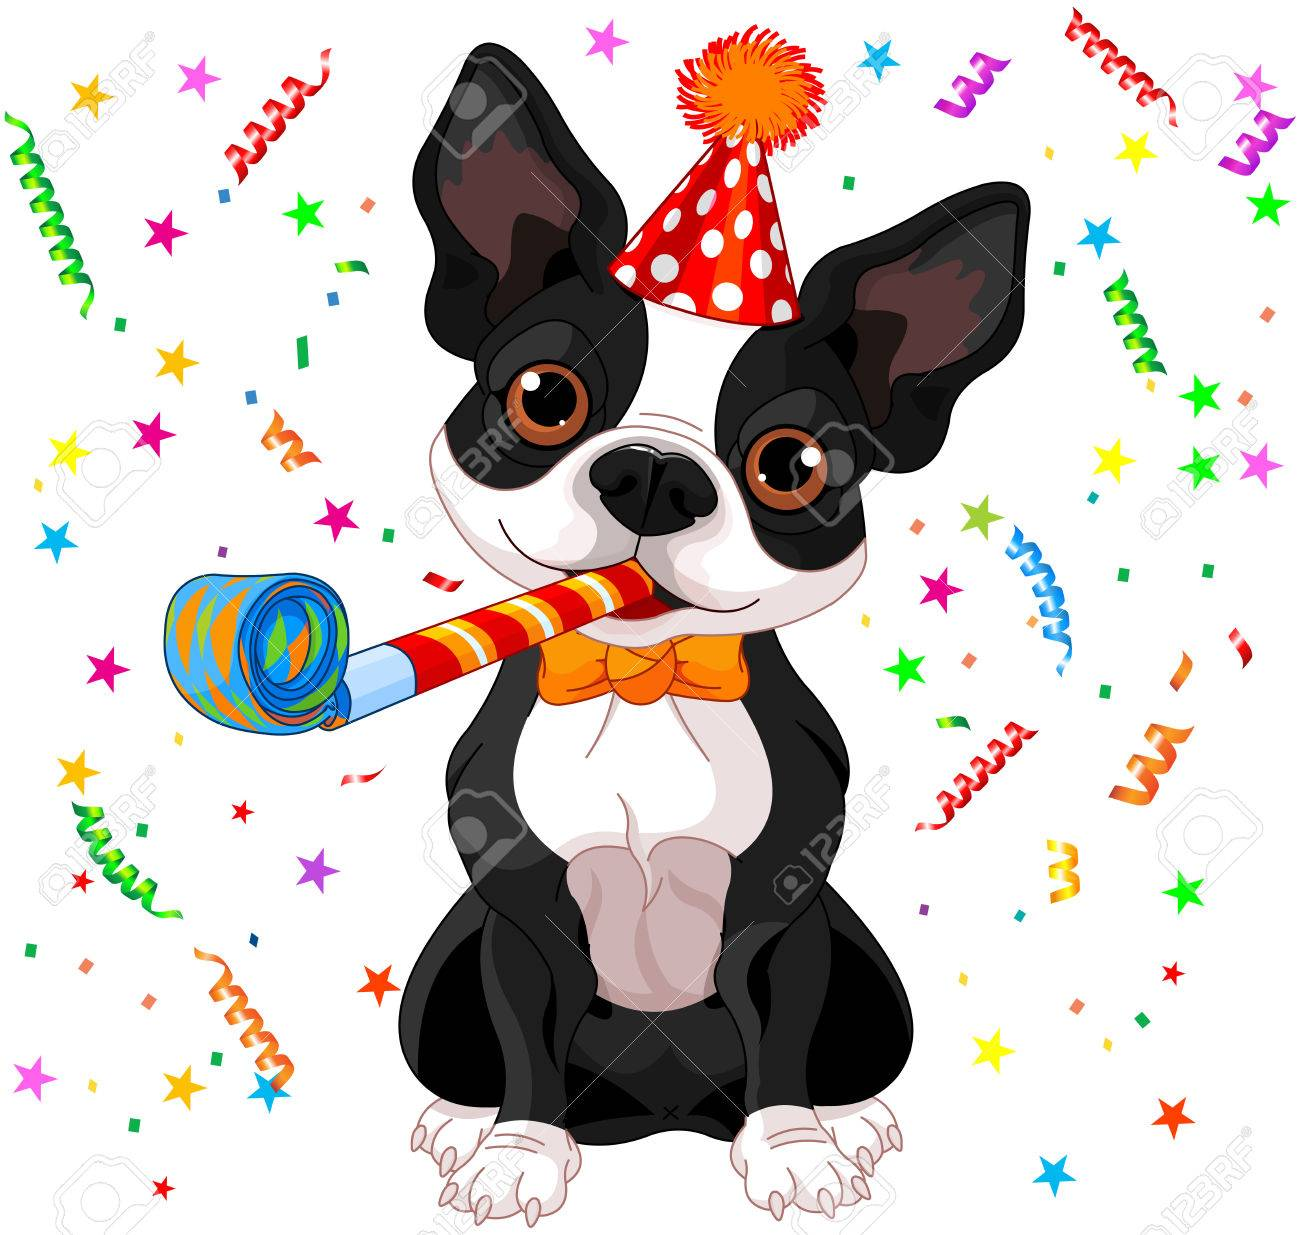 Comment démarrer une rencontre canine? - Page 3 35588778-illustration-of-cute-boston-terrier-celebrating